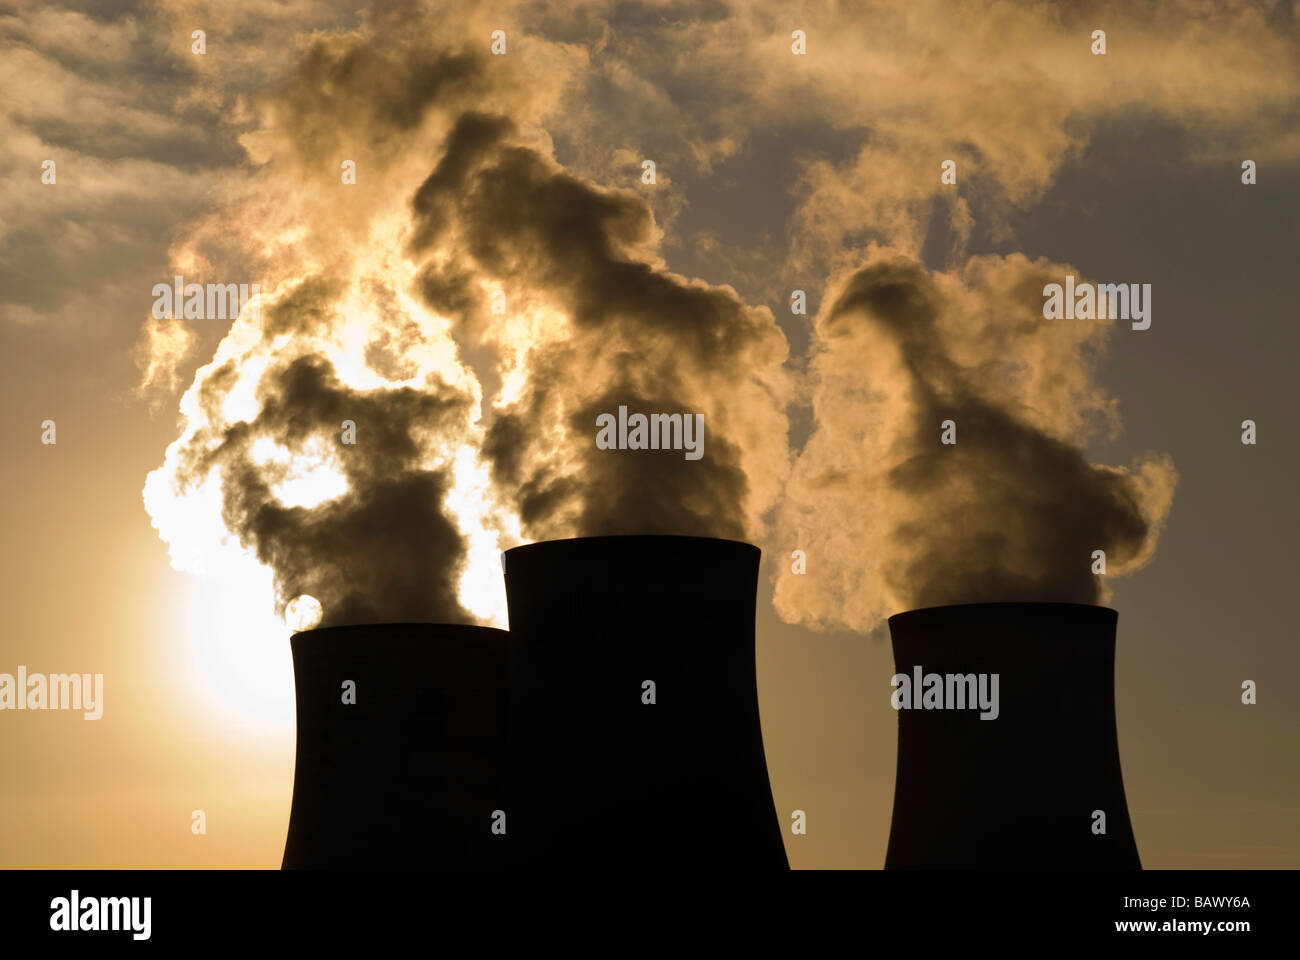 Cooling Towers of Nuclear Power Plant Stock Photo